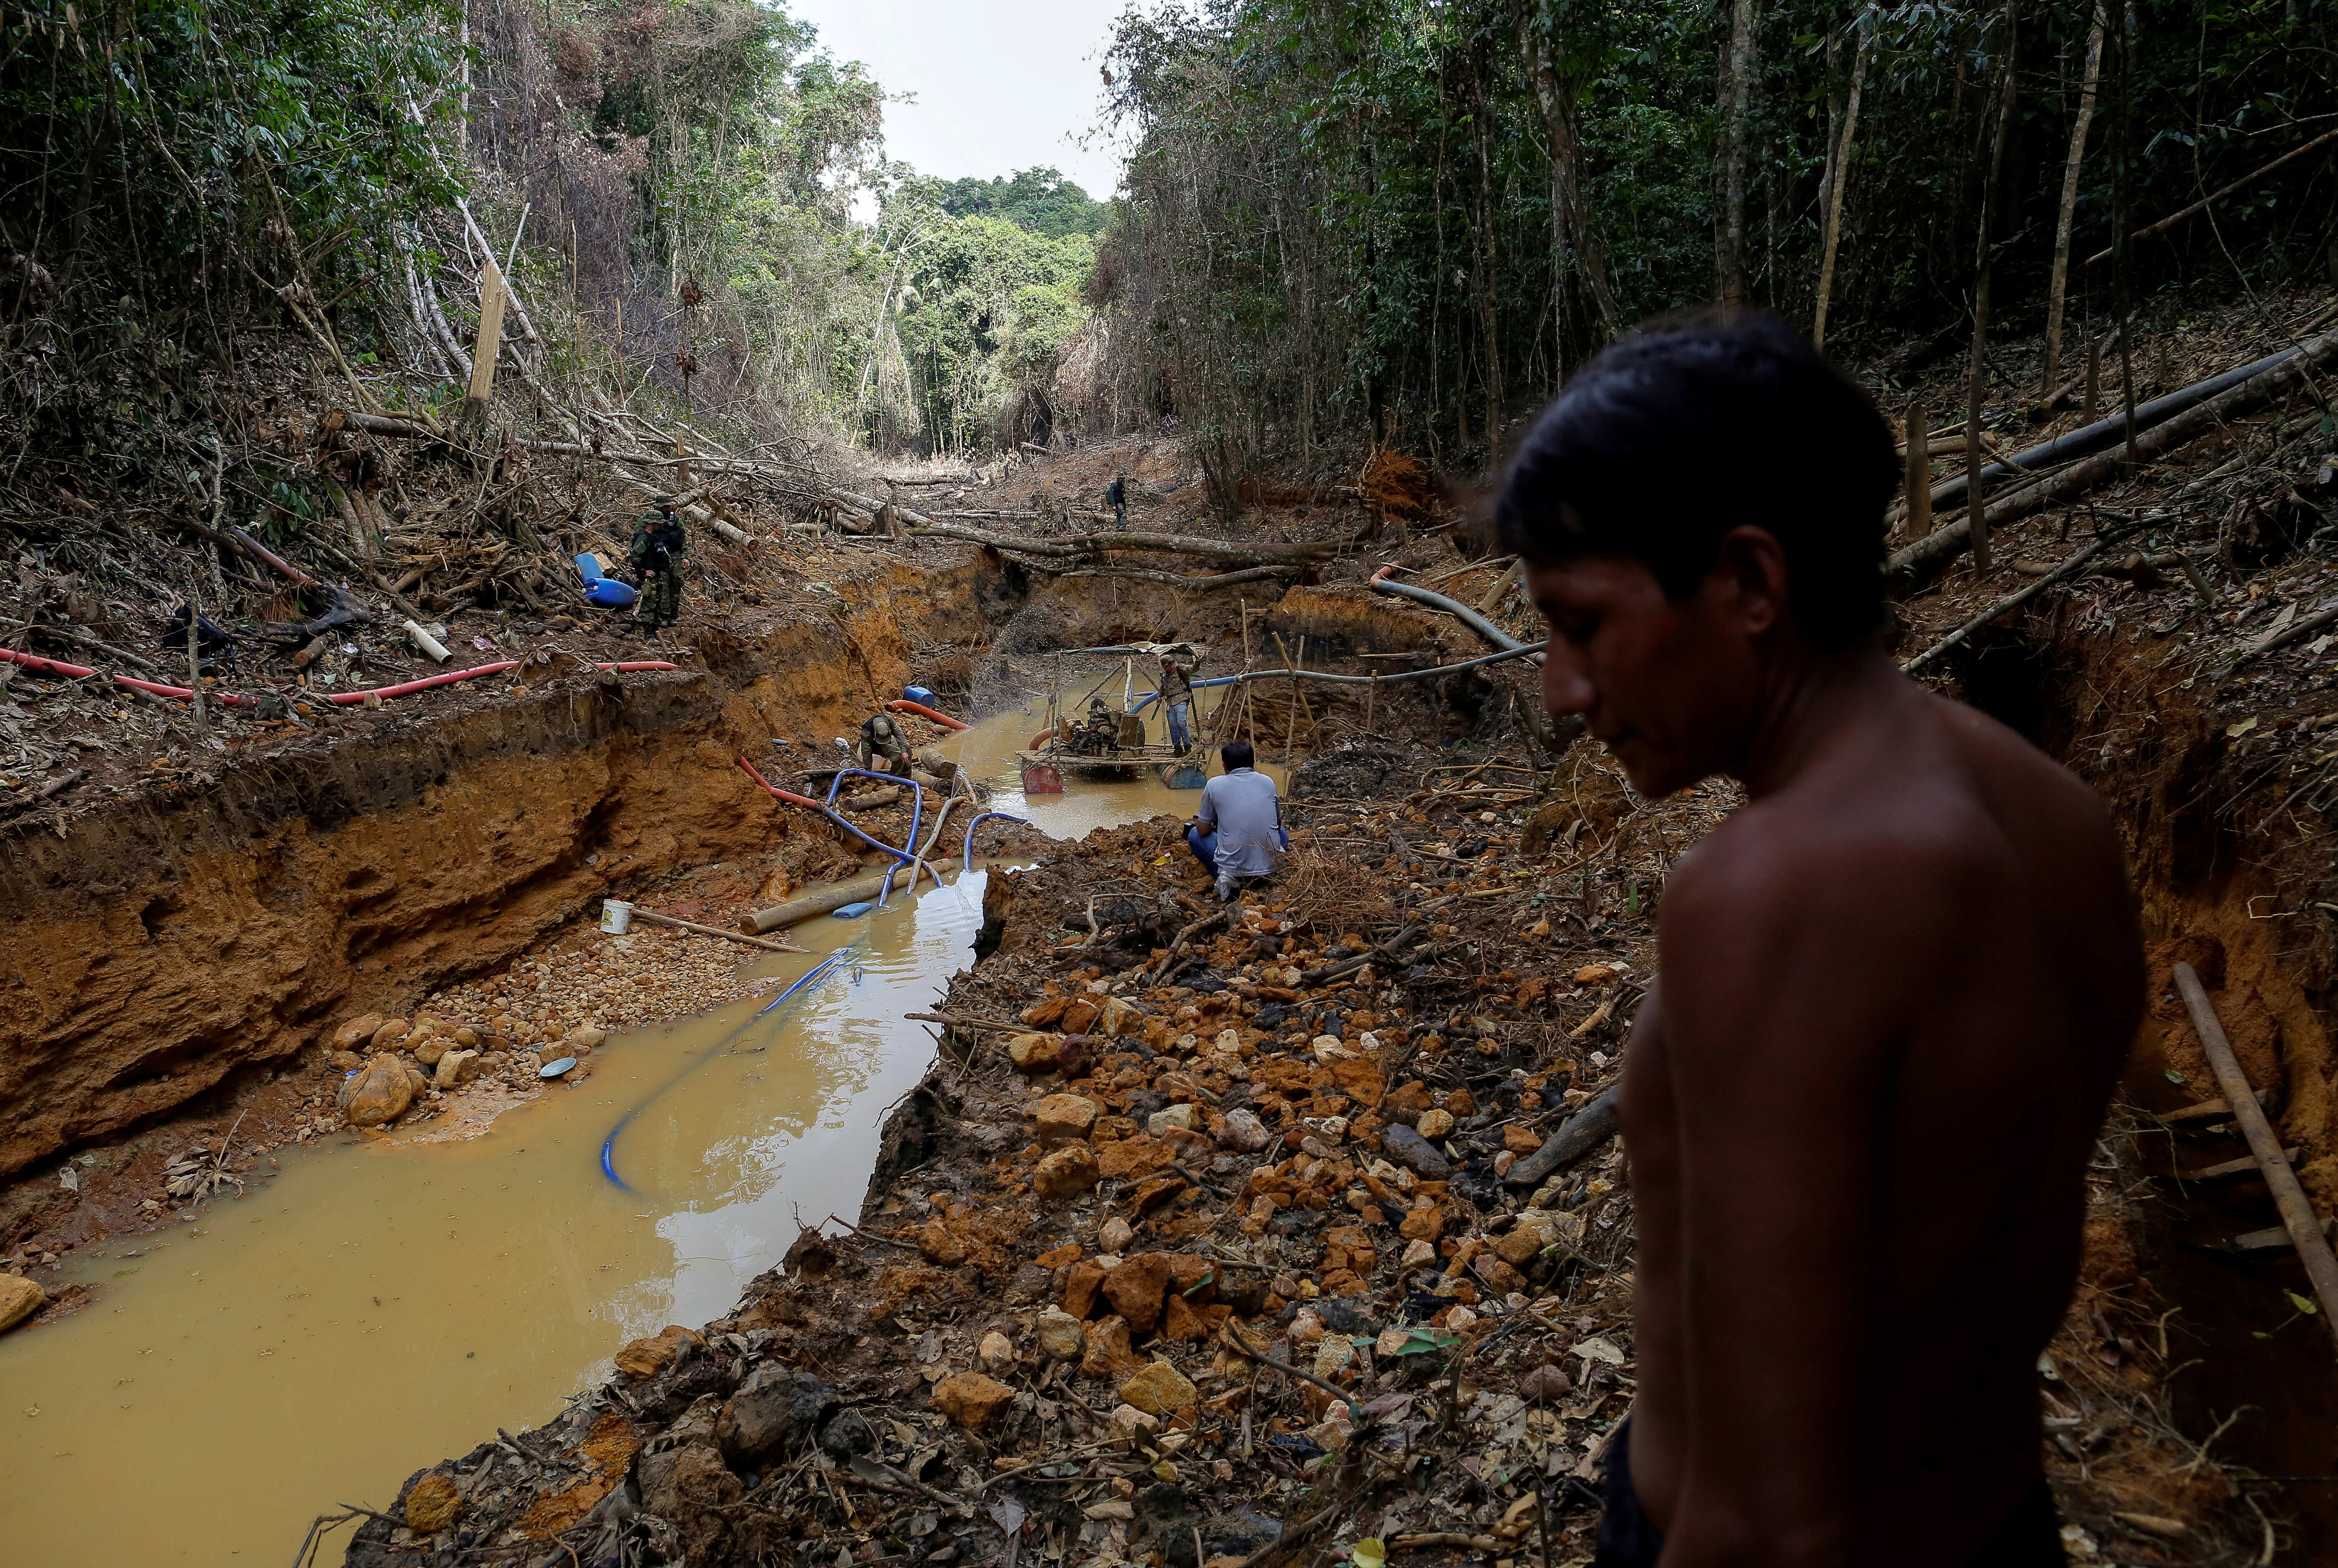 A Yanomami indian follows agents of Brazil's environmental agency in a gold mine during an operation against illegal gold mining on indigenous land, in the heart of the Amazon rainforest, in Roraima state, Brazil April 17, 2016. REUTERS/Bruno Kelly/File Photo